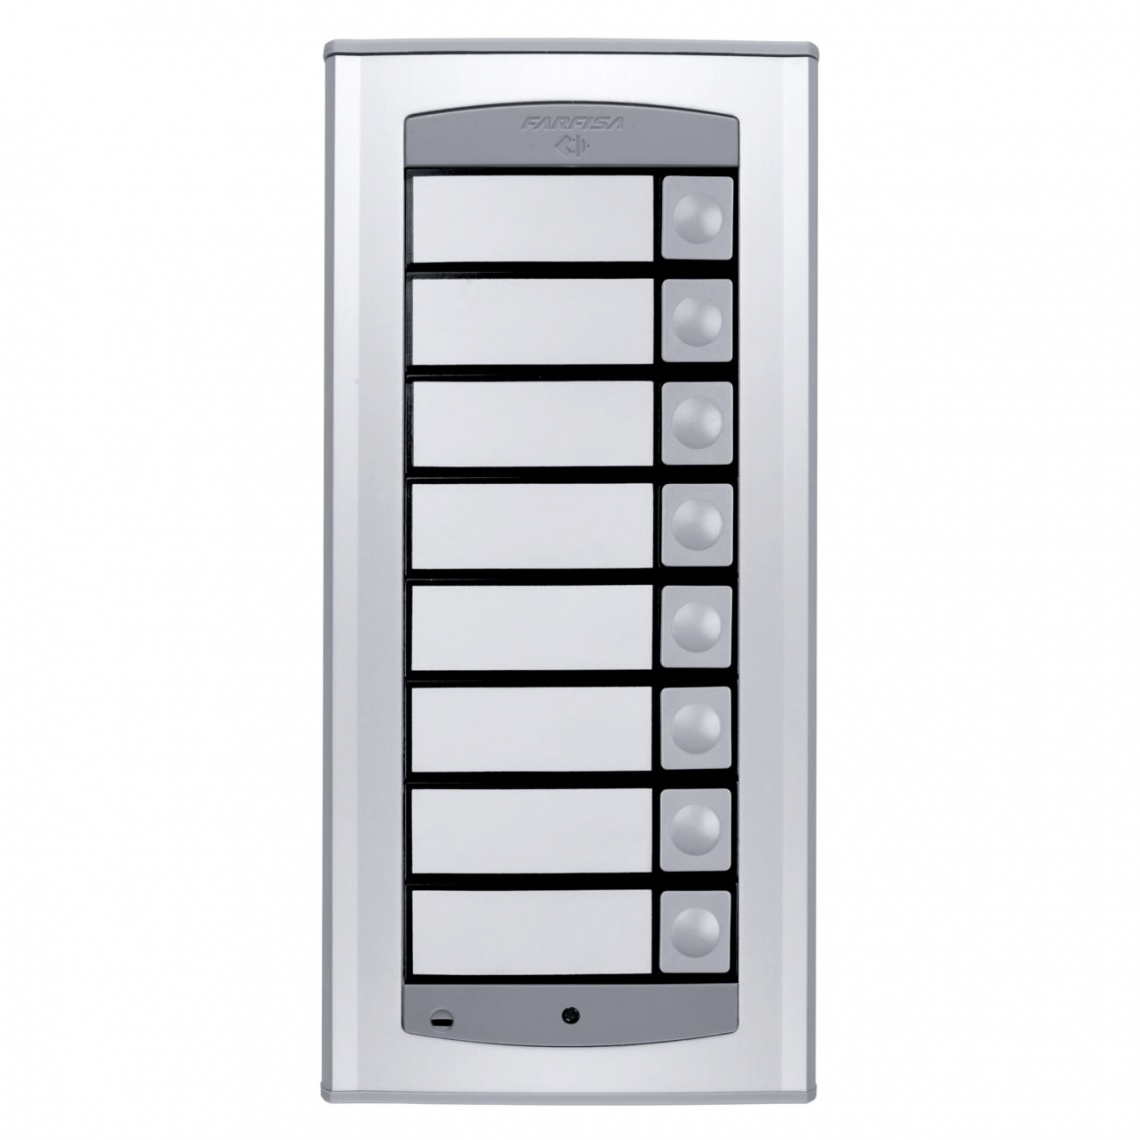 Door station additional button - AGL100T